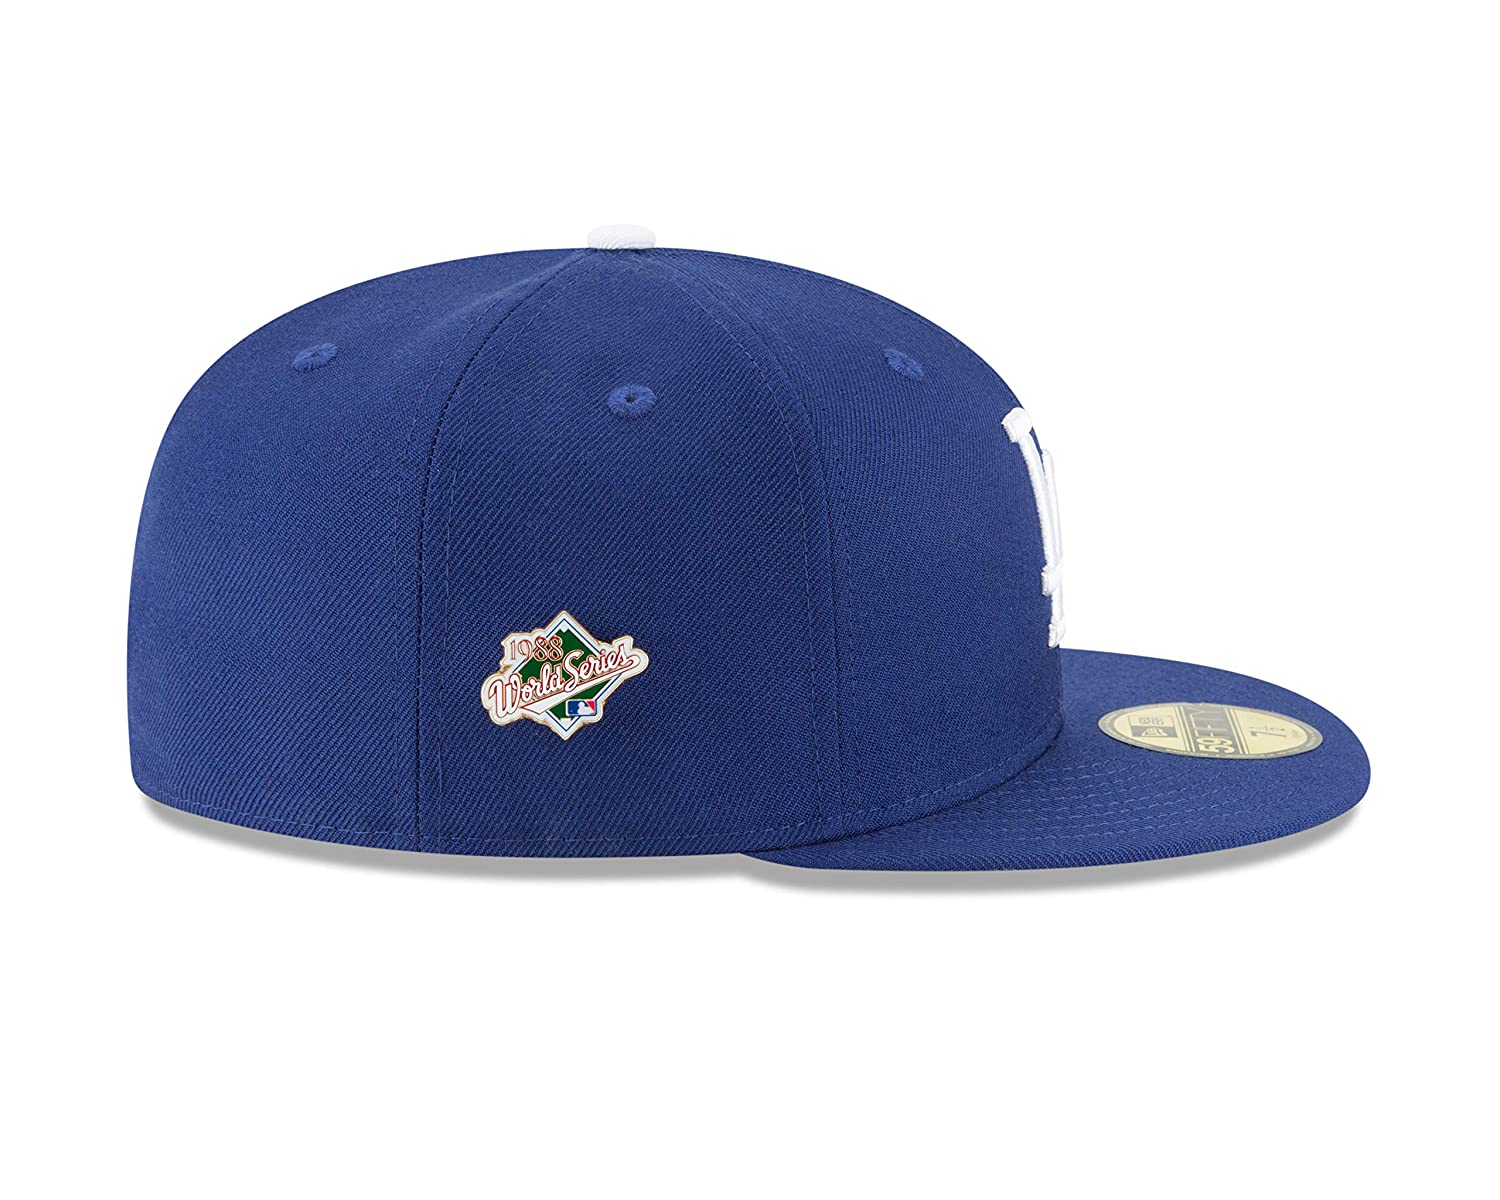 7538b308be72b Amazon.com   New Era Los Angeles Dodgers World Series Pin 1988 Champions  Fitted 59Fifty MLB Hat   Sports   Outdoors